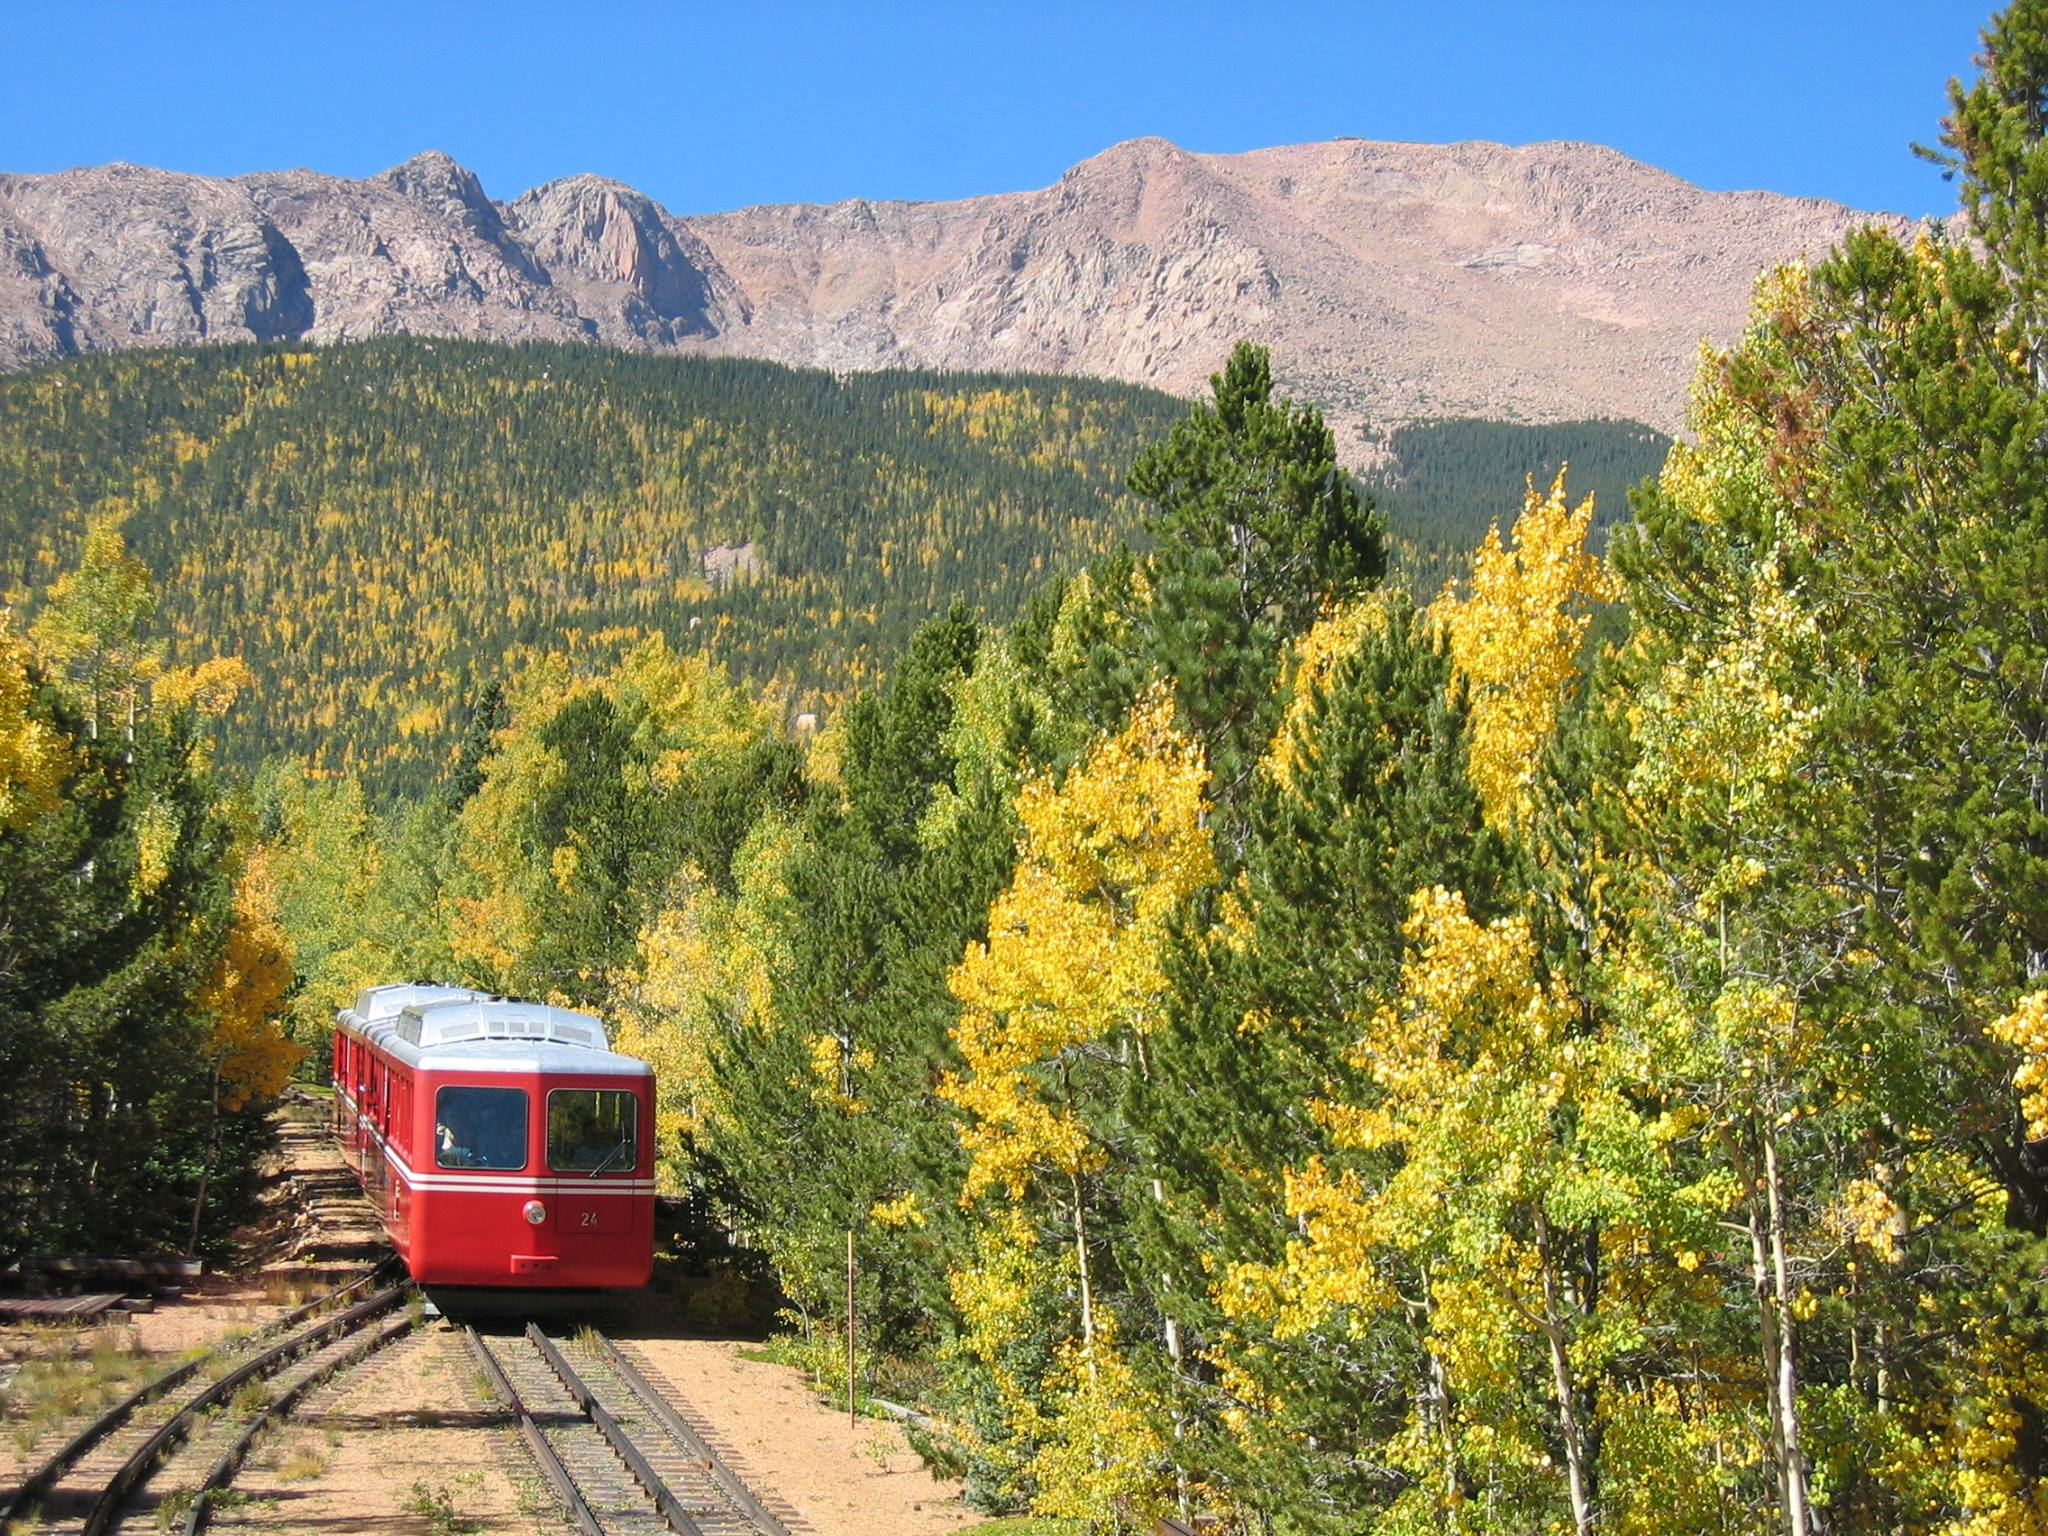 Ride The Pikes Peak Cog Railway To See Beautiful Fall Foliage